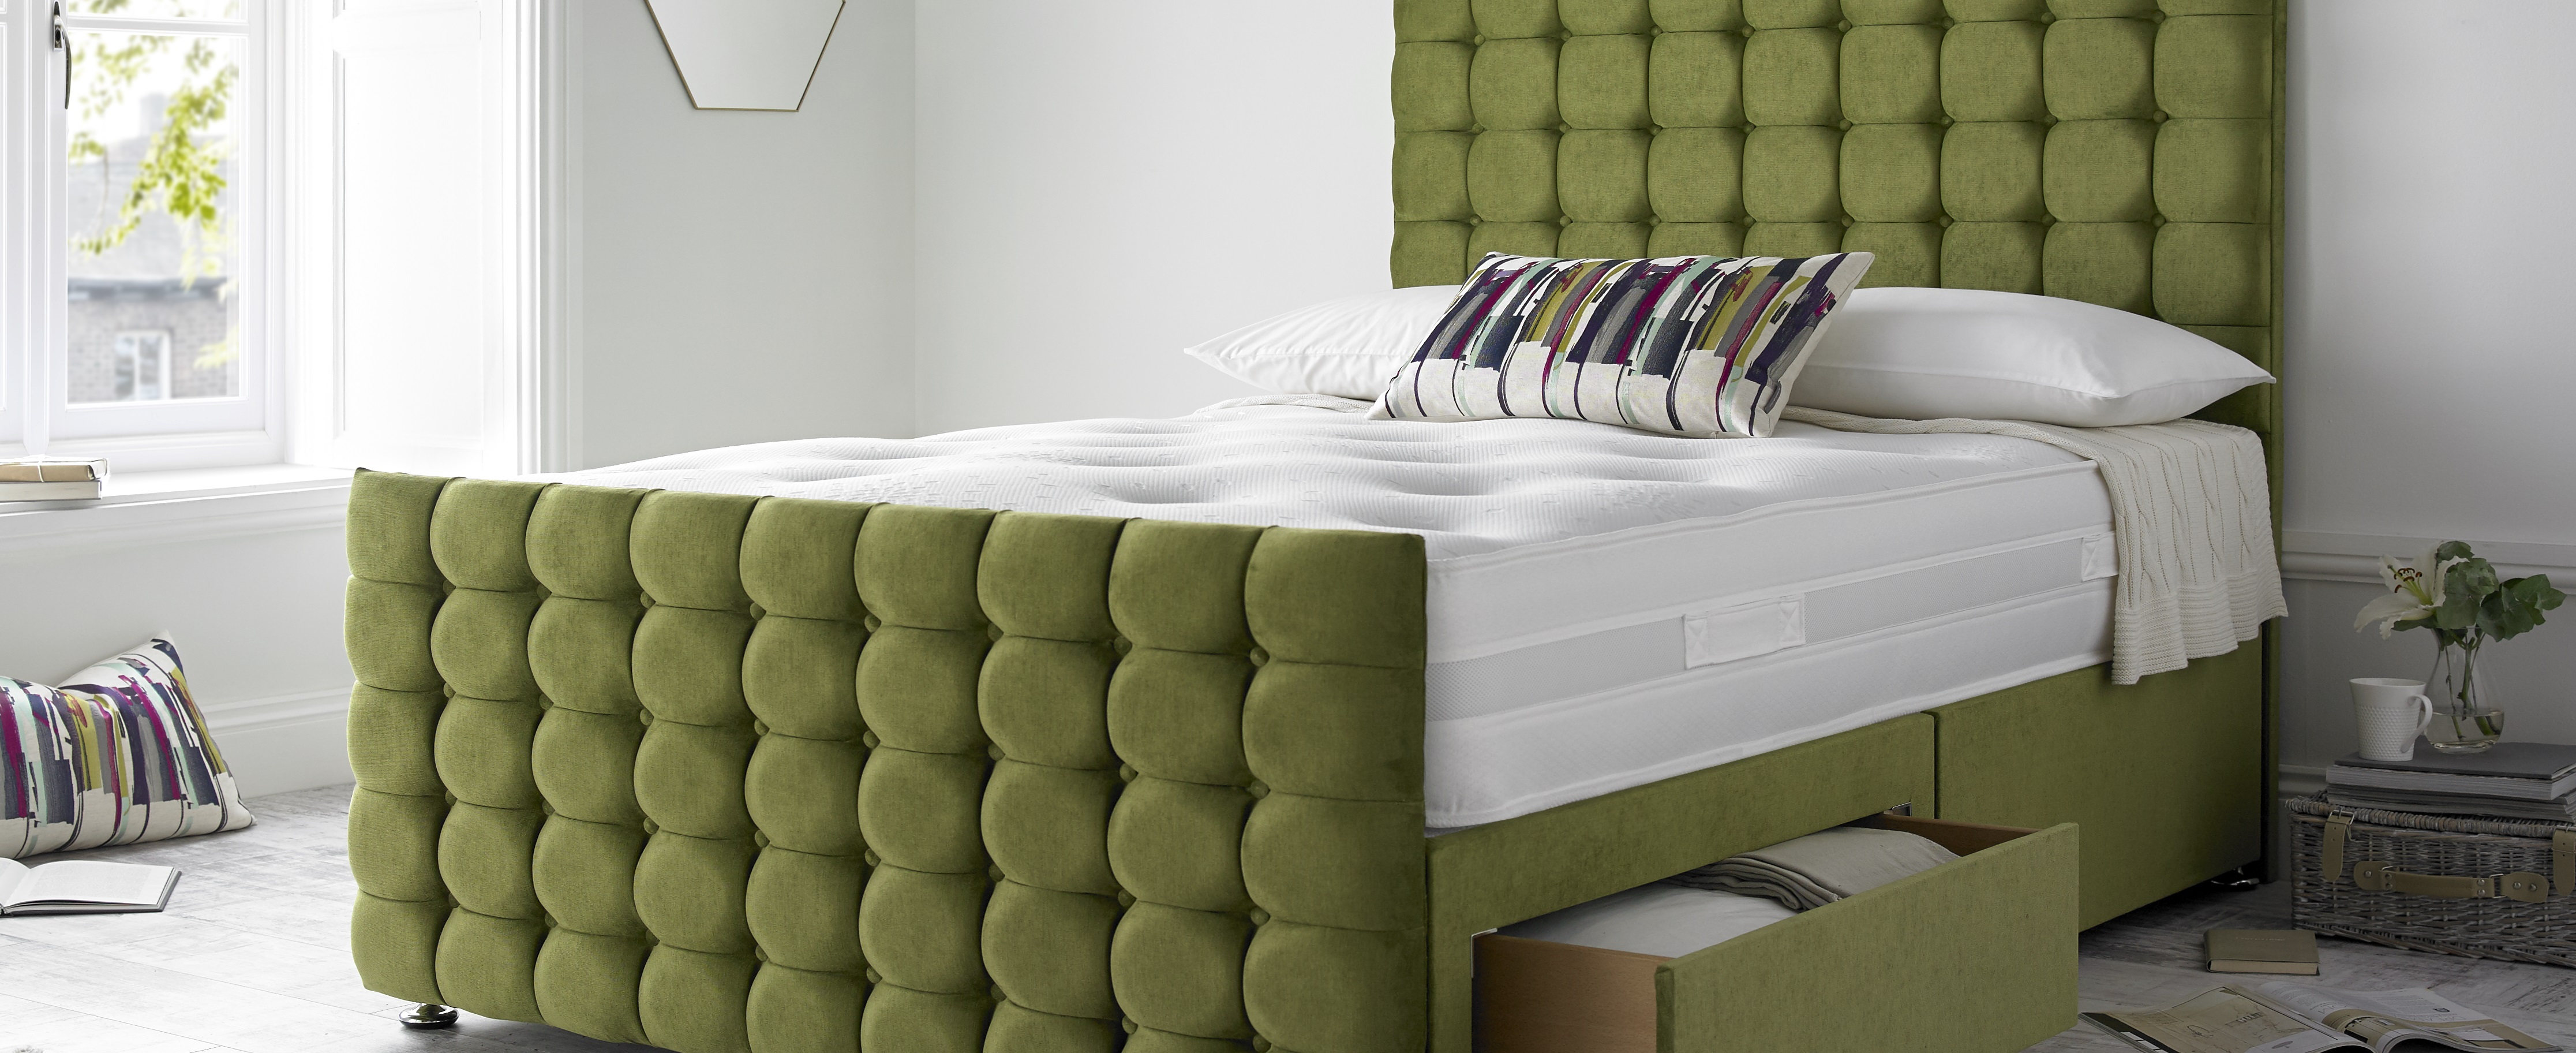 Jump Into A New Bed This March With A Great Deal From Craig's In Our Special Bedroom Furniture Event!